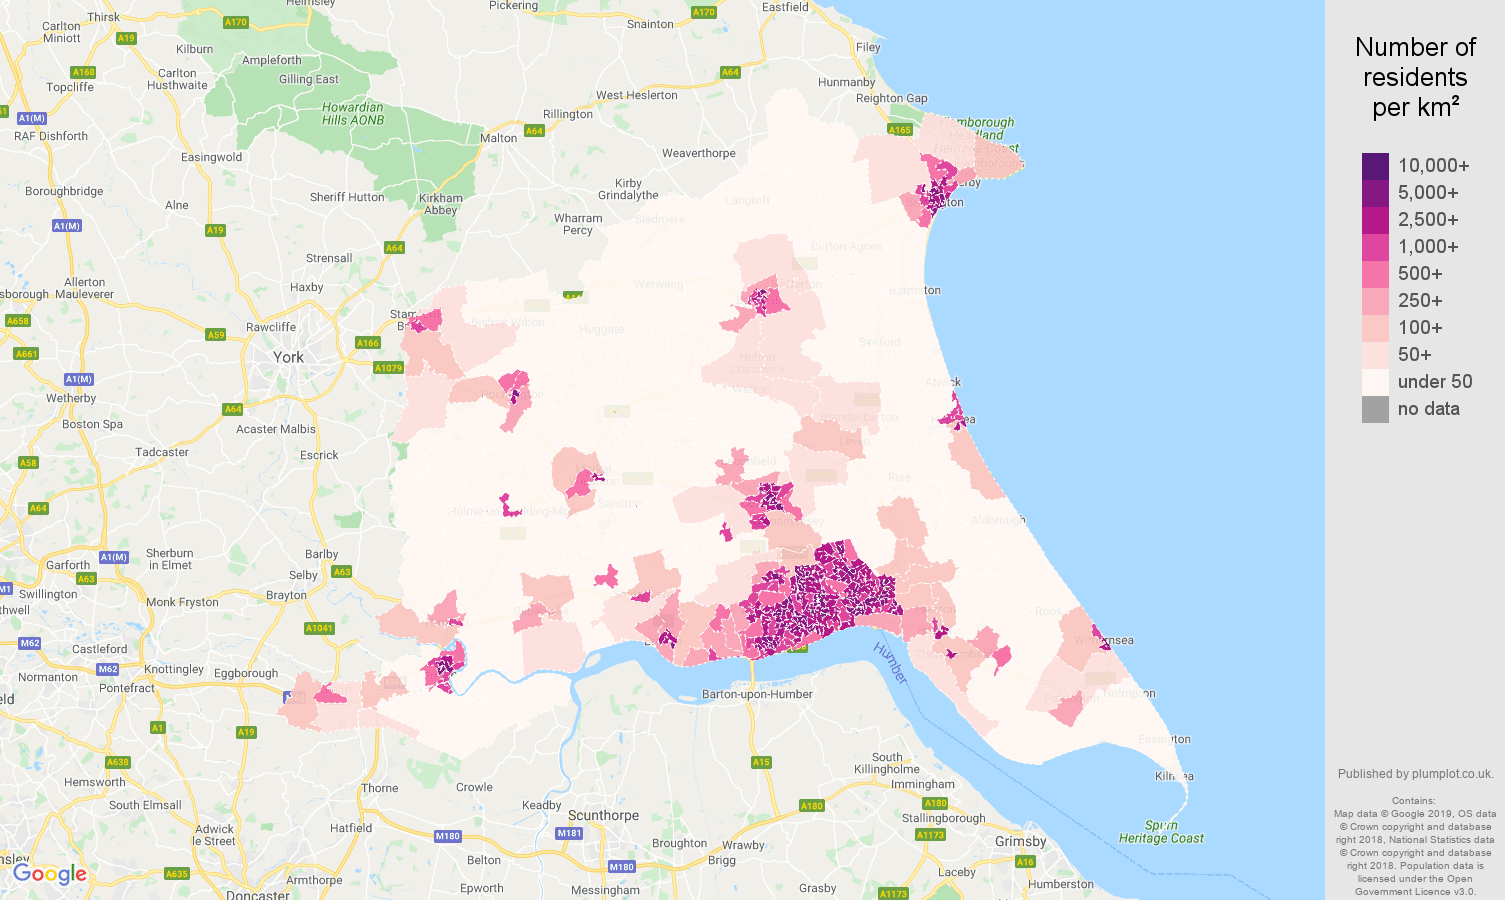 East Riding of Yorkshire population density map